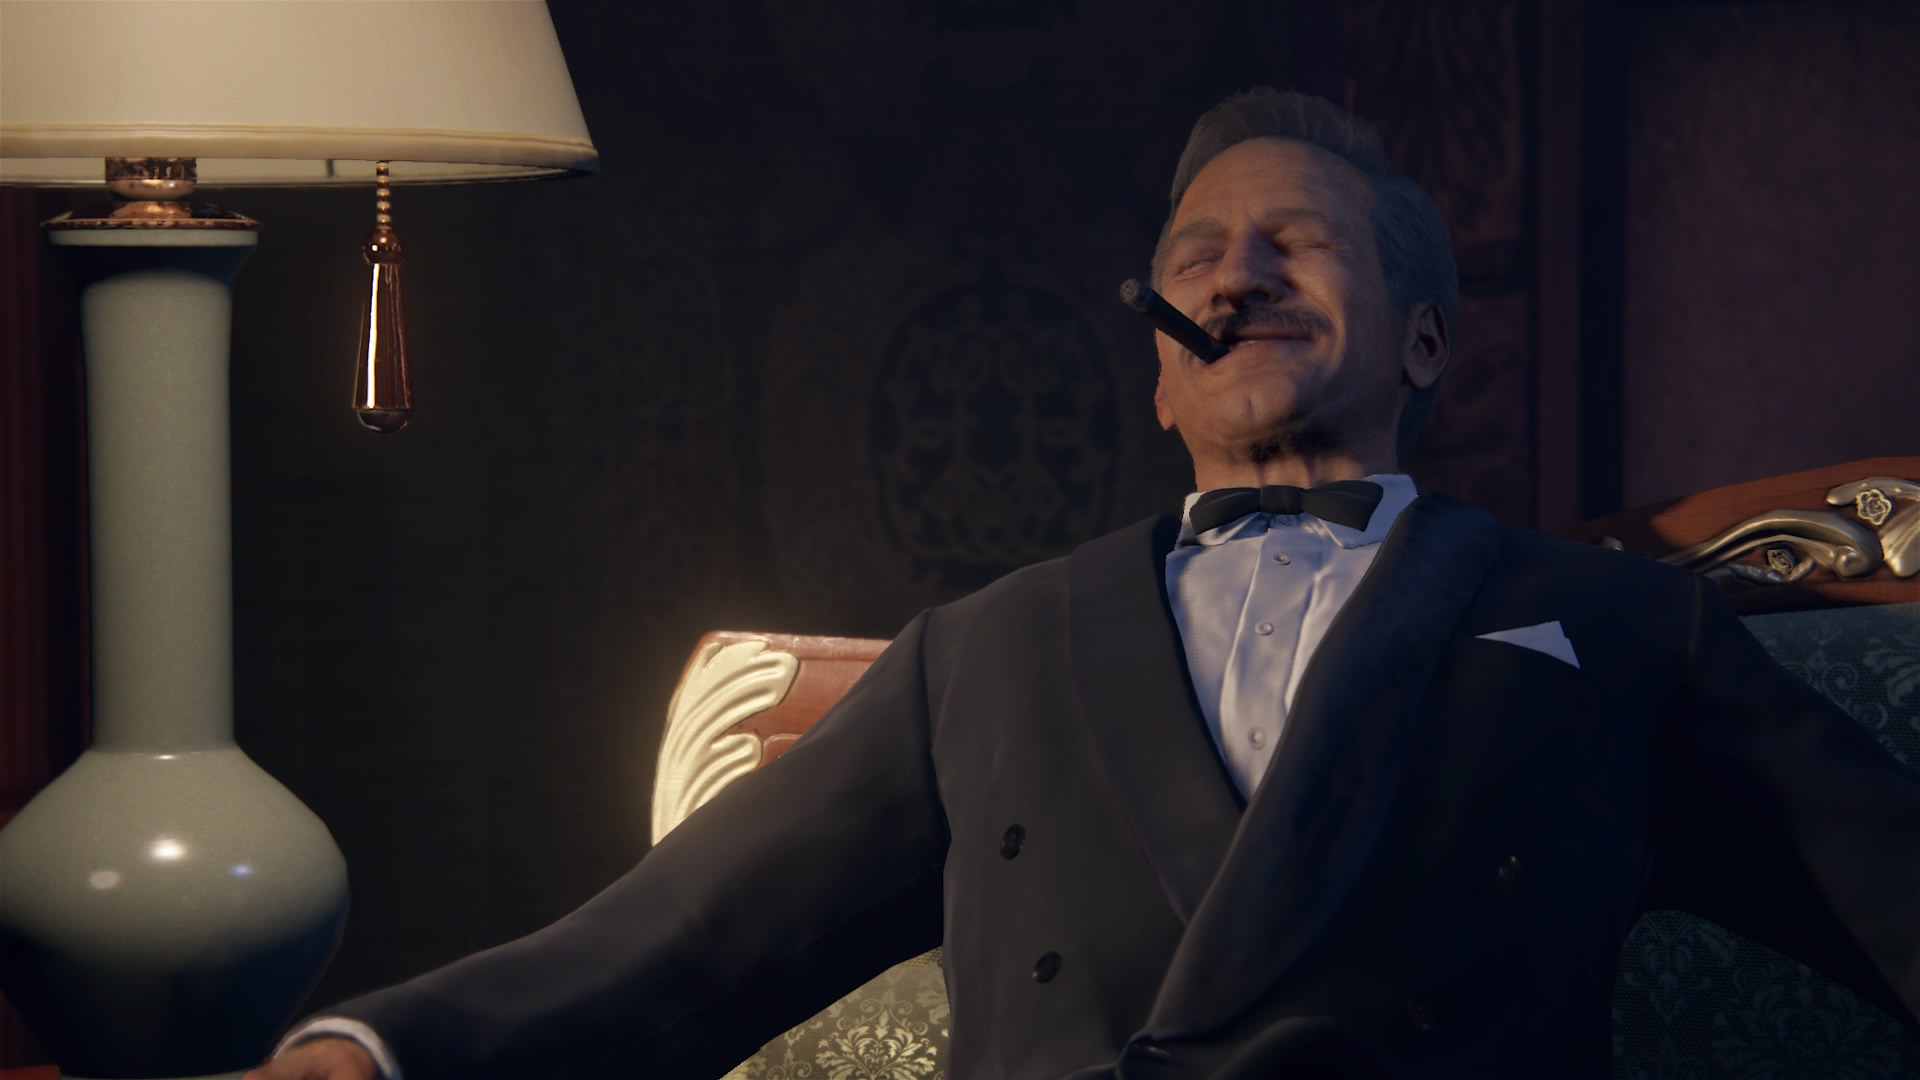 uncharted_4_sully_laughing_auction_cigar.jpg